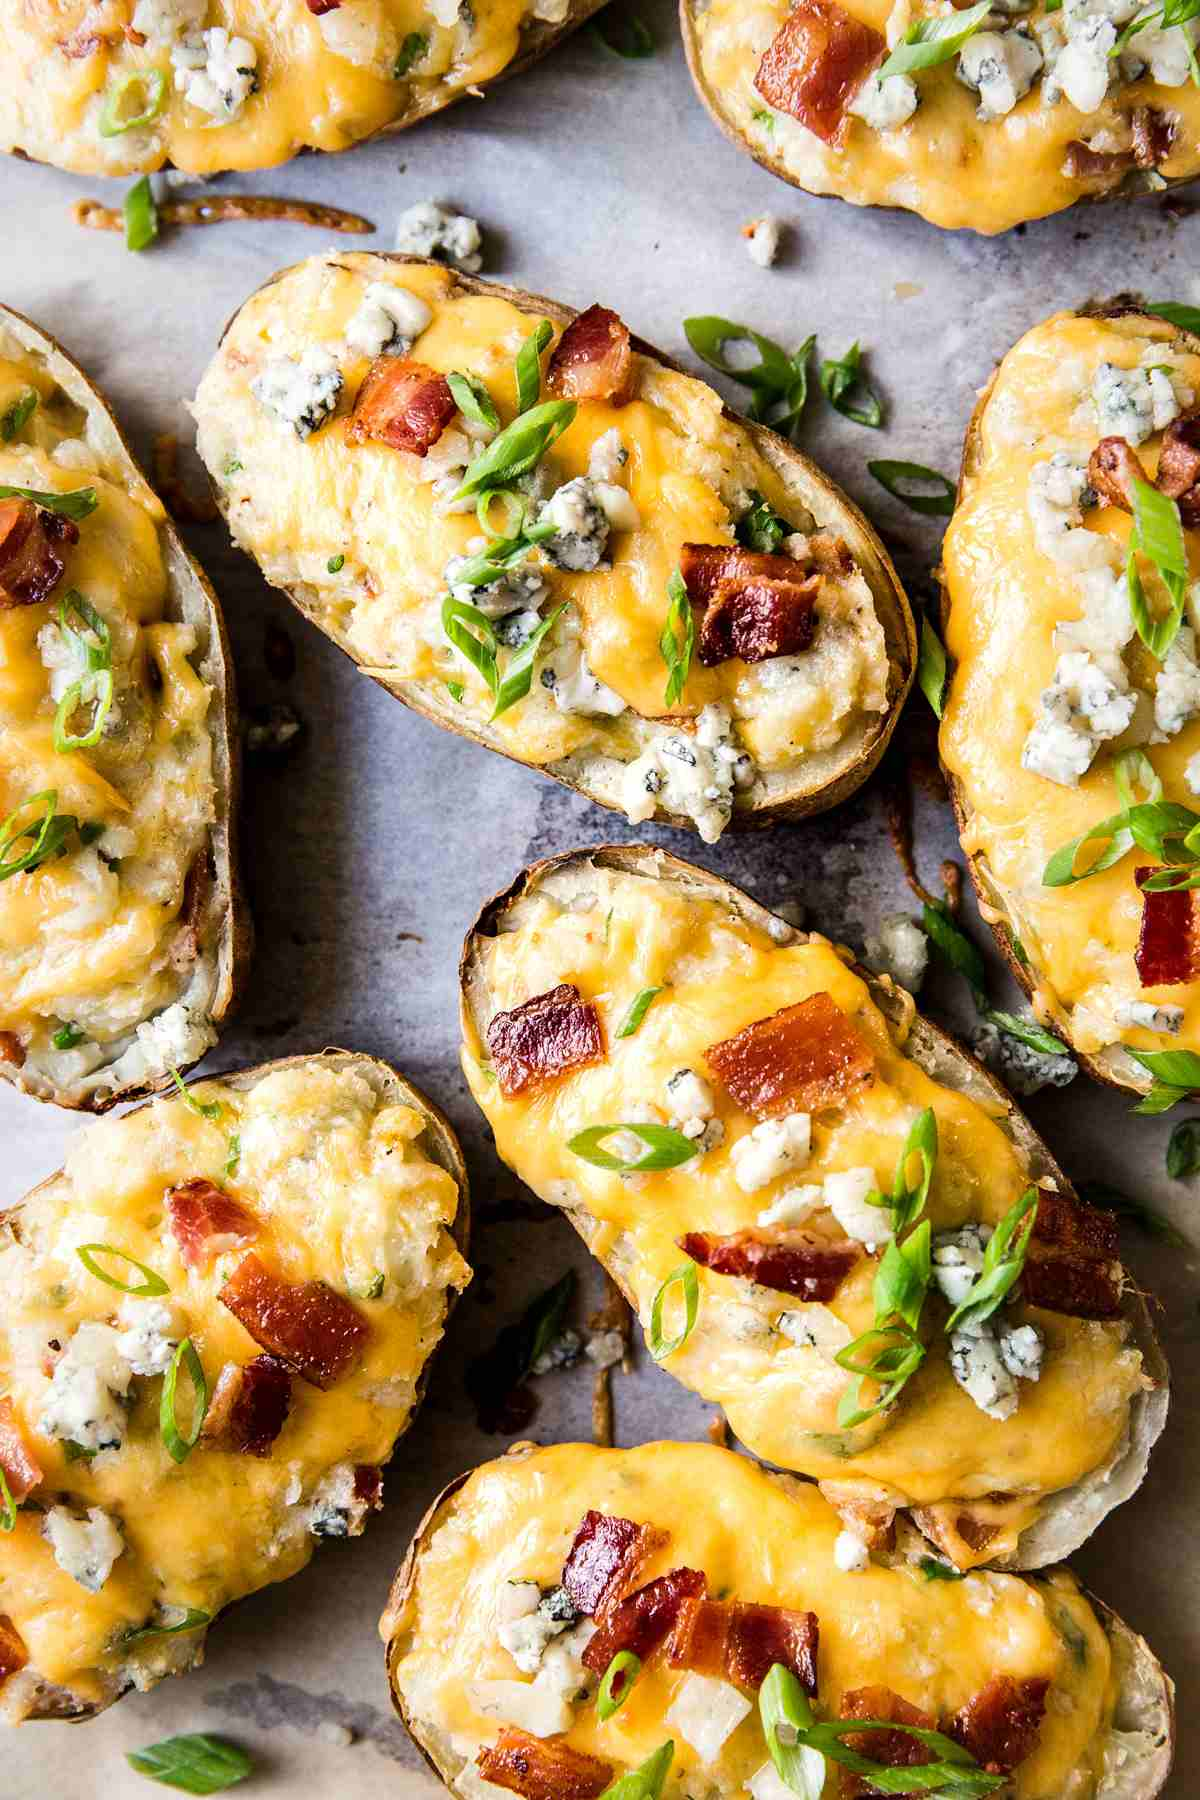 Beyond Mashed and Fried—15 of the Best Ways to Cook Potatoes